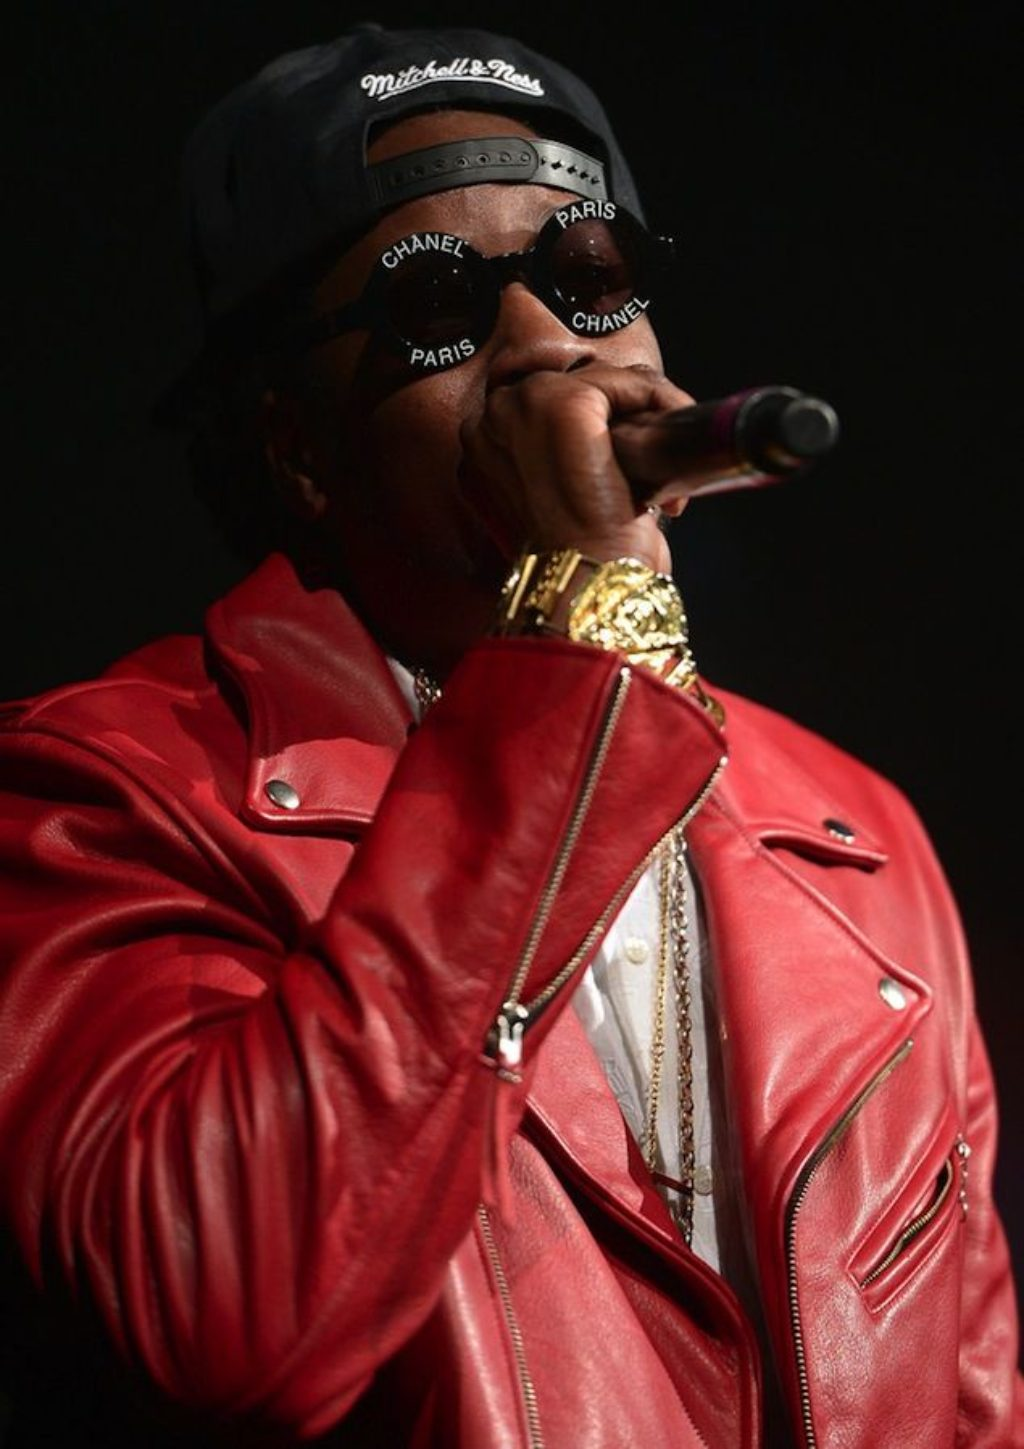 Kayne West Wearing A Red Leather Motorcycle Jacket and Chanel Sunglasses